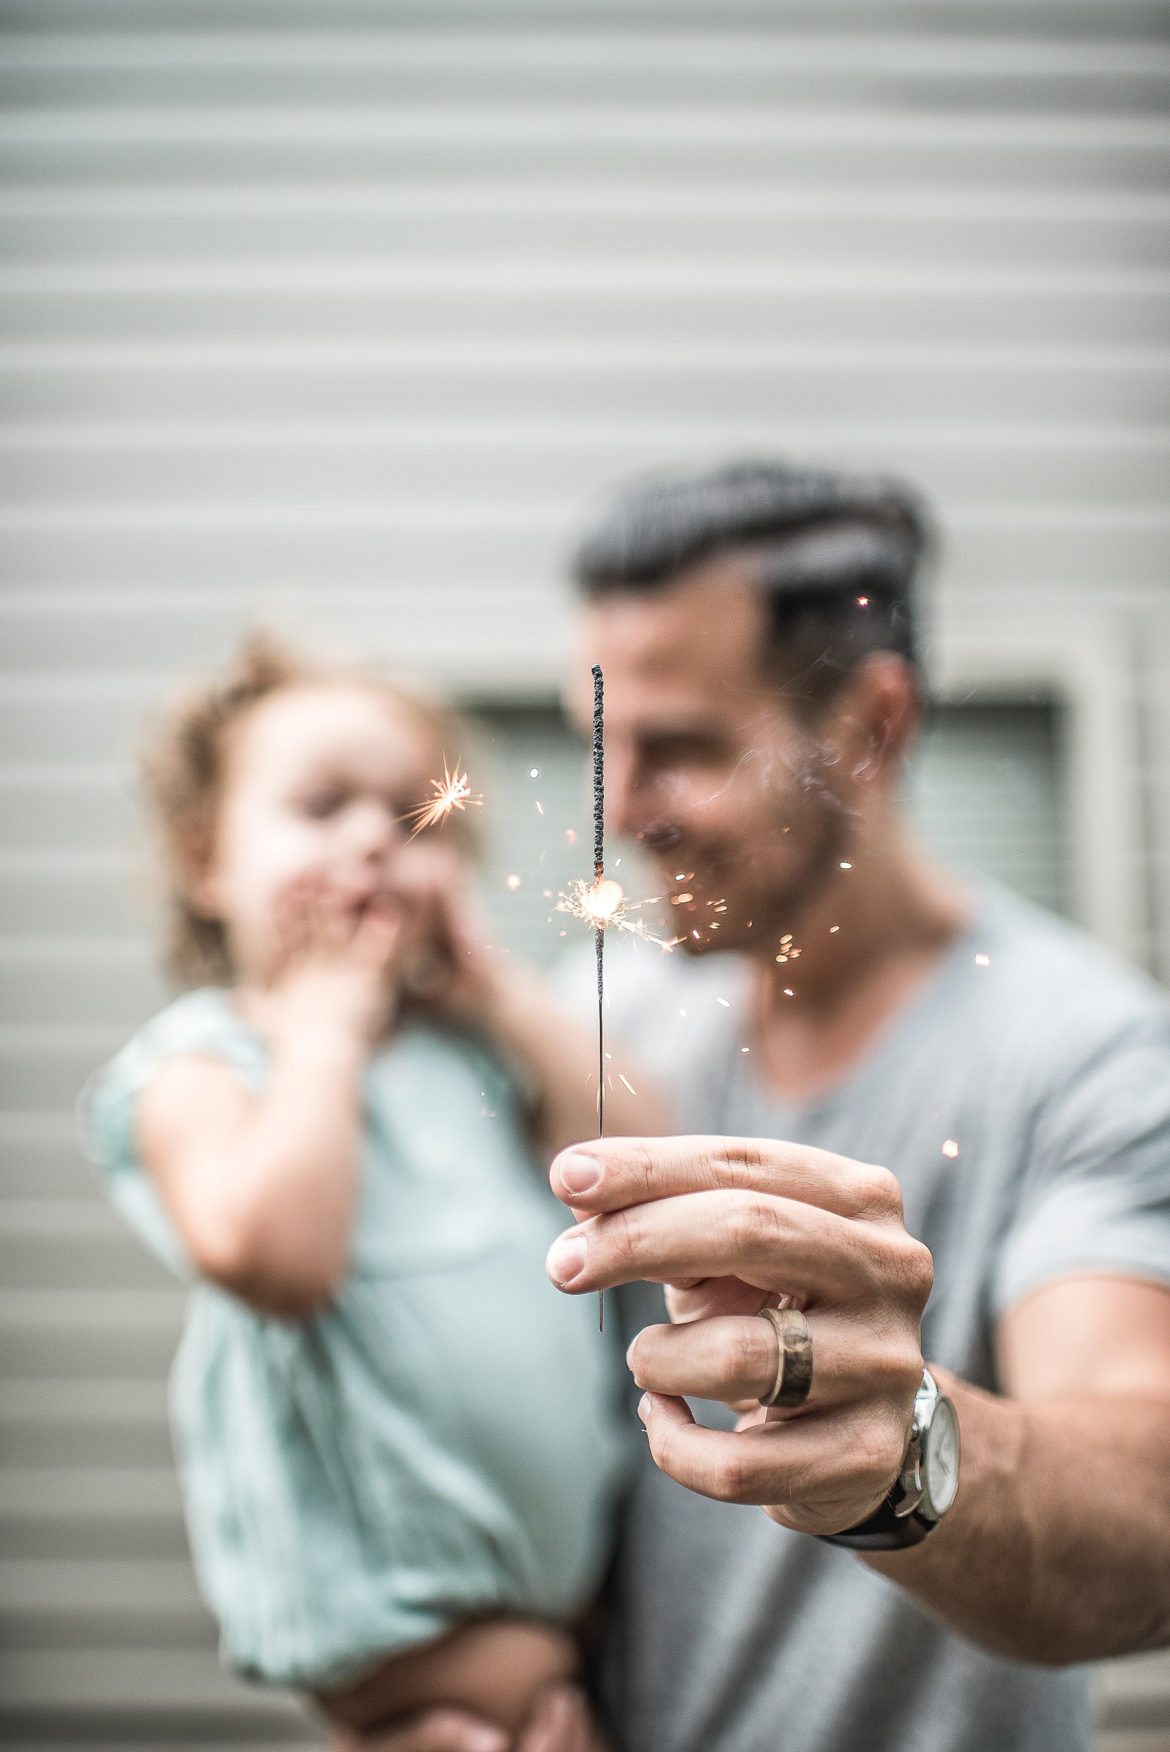 man holding sparkler and child - best neighborhoods in katy texas - most popular neighborhoods in katy texas